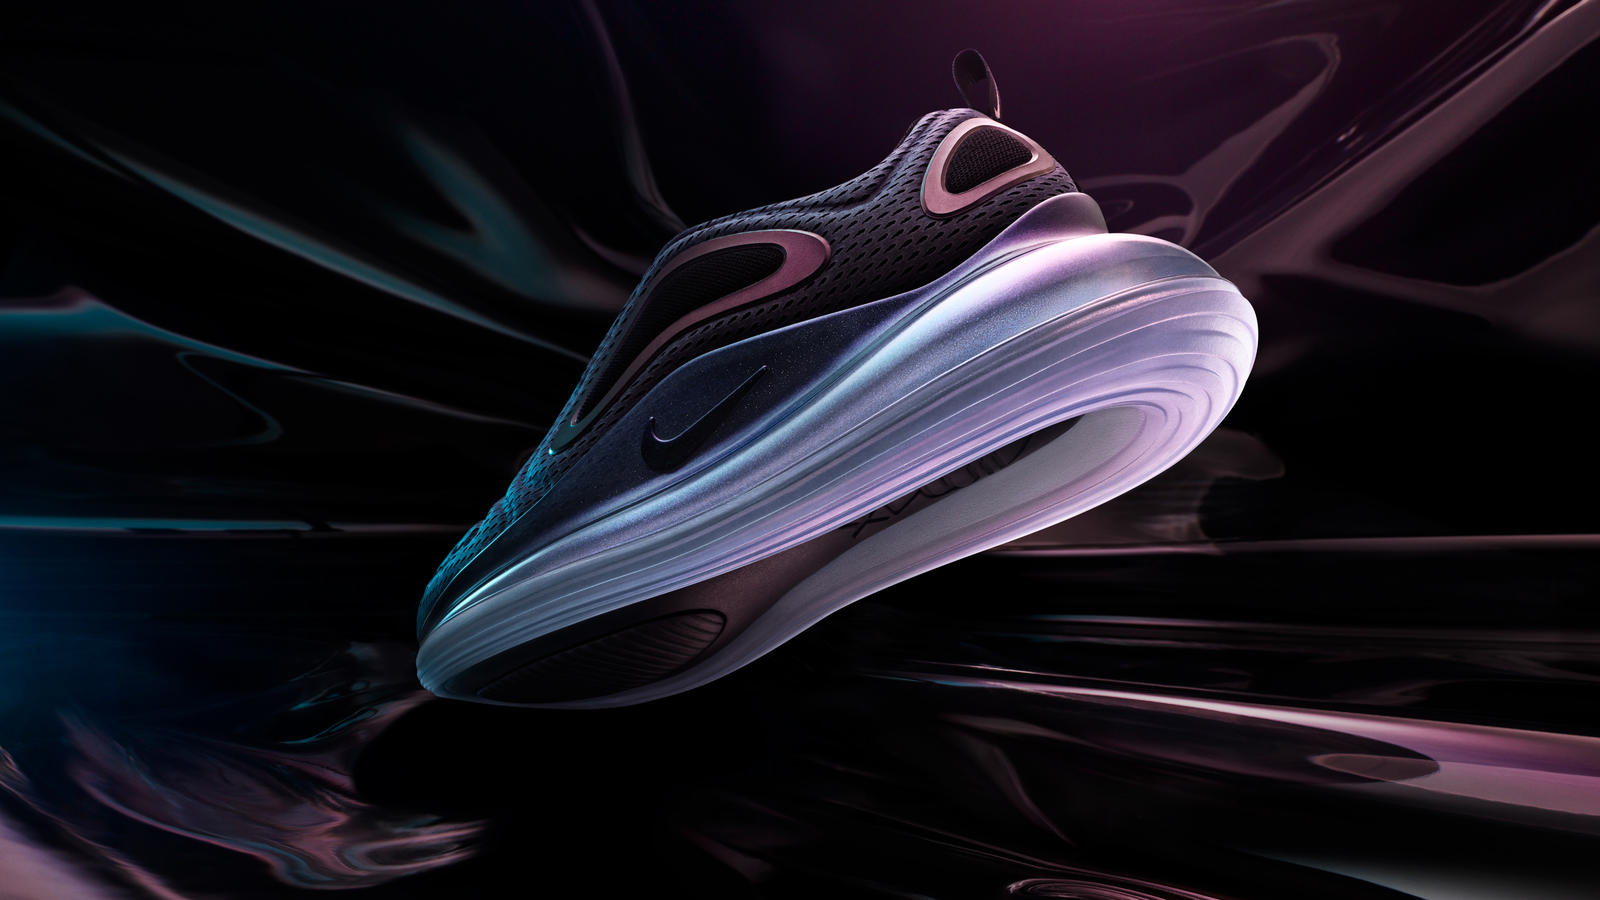 4de2e7a0847 Seven Key Facts About the New Air Max 720 - Nike News